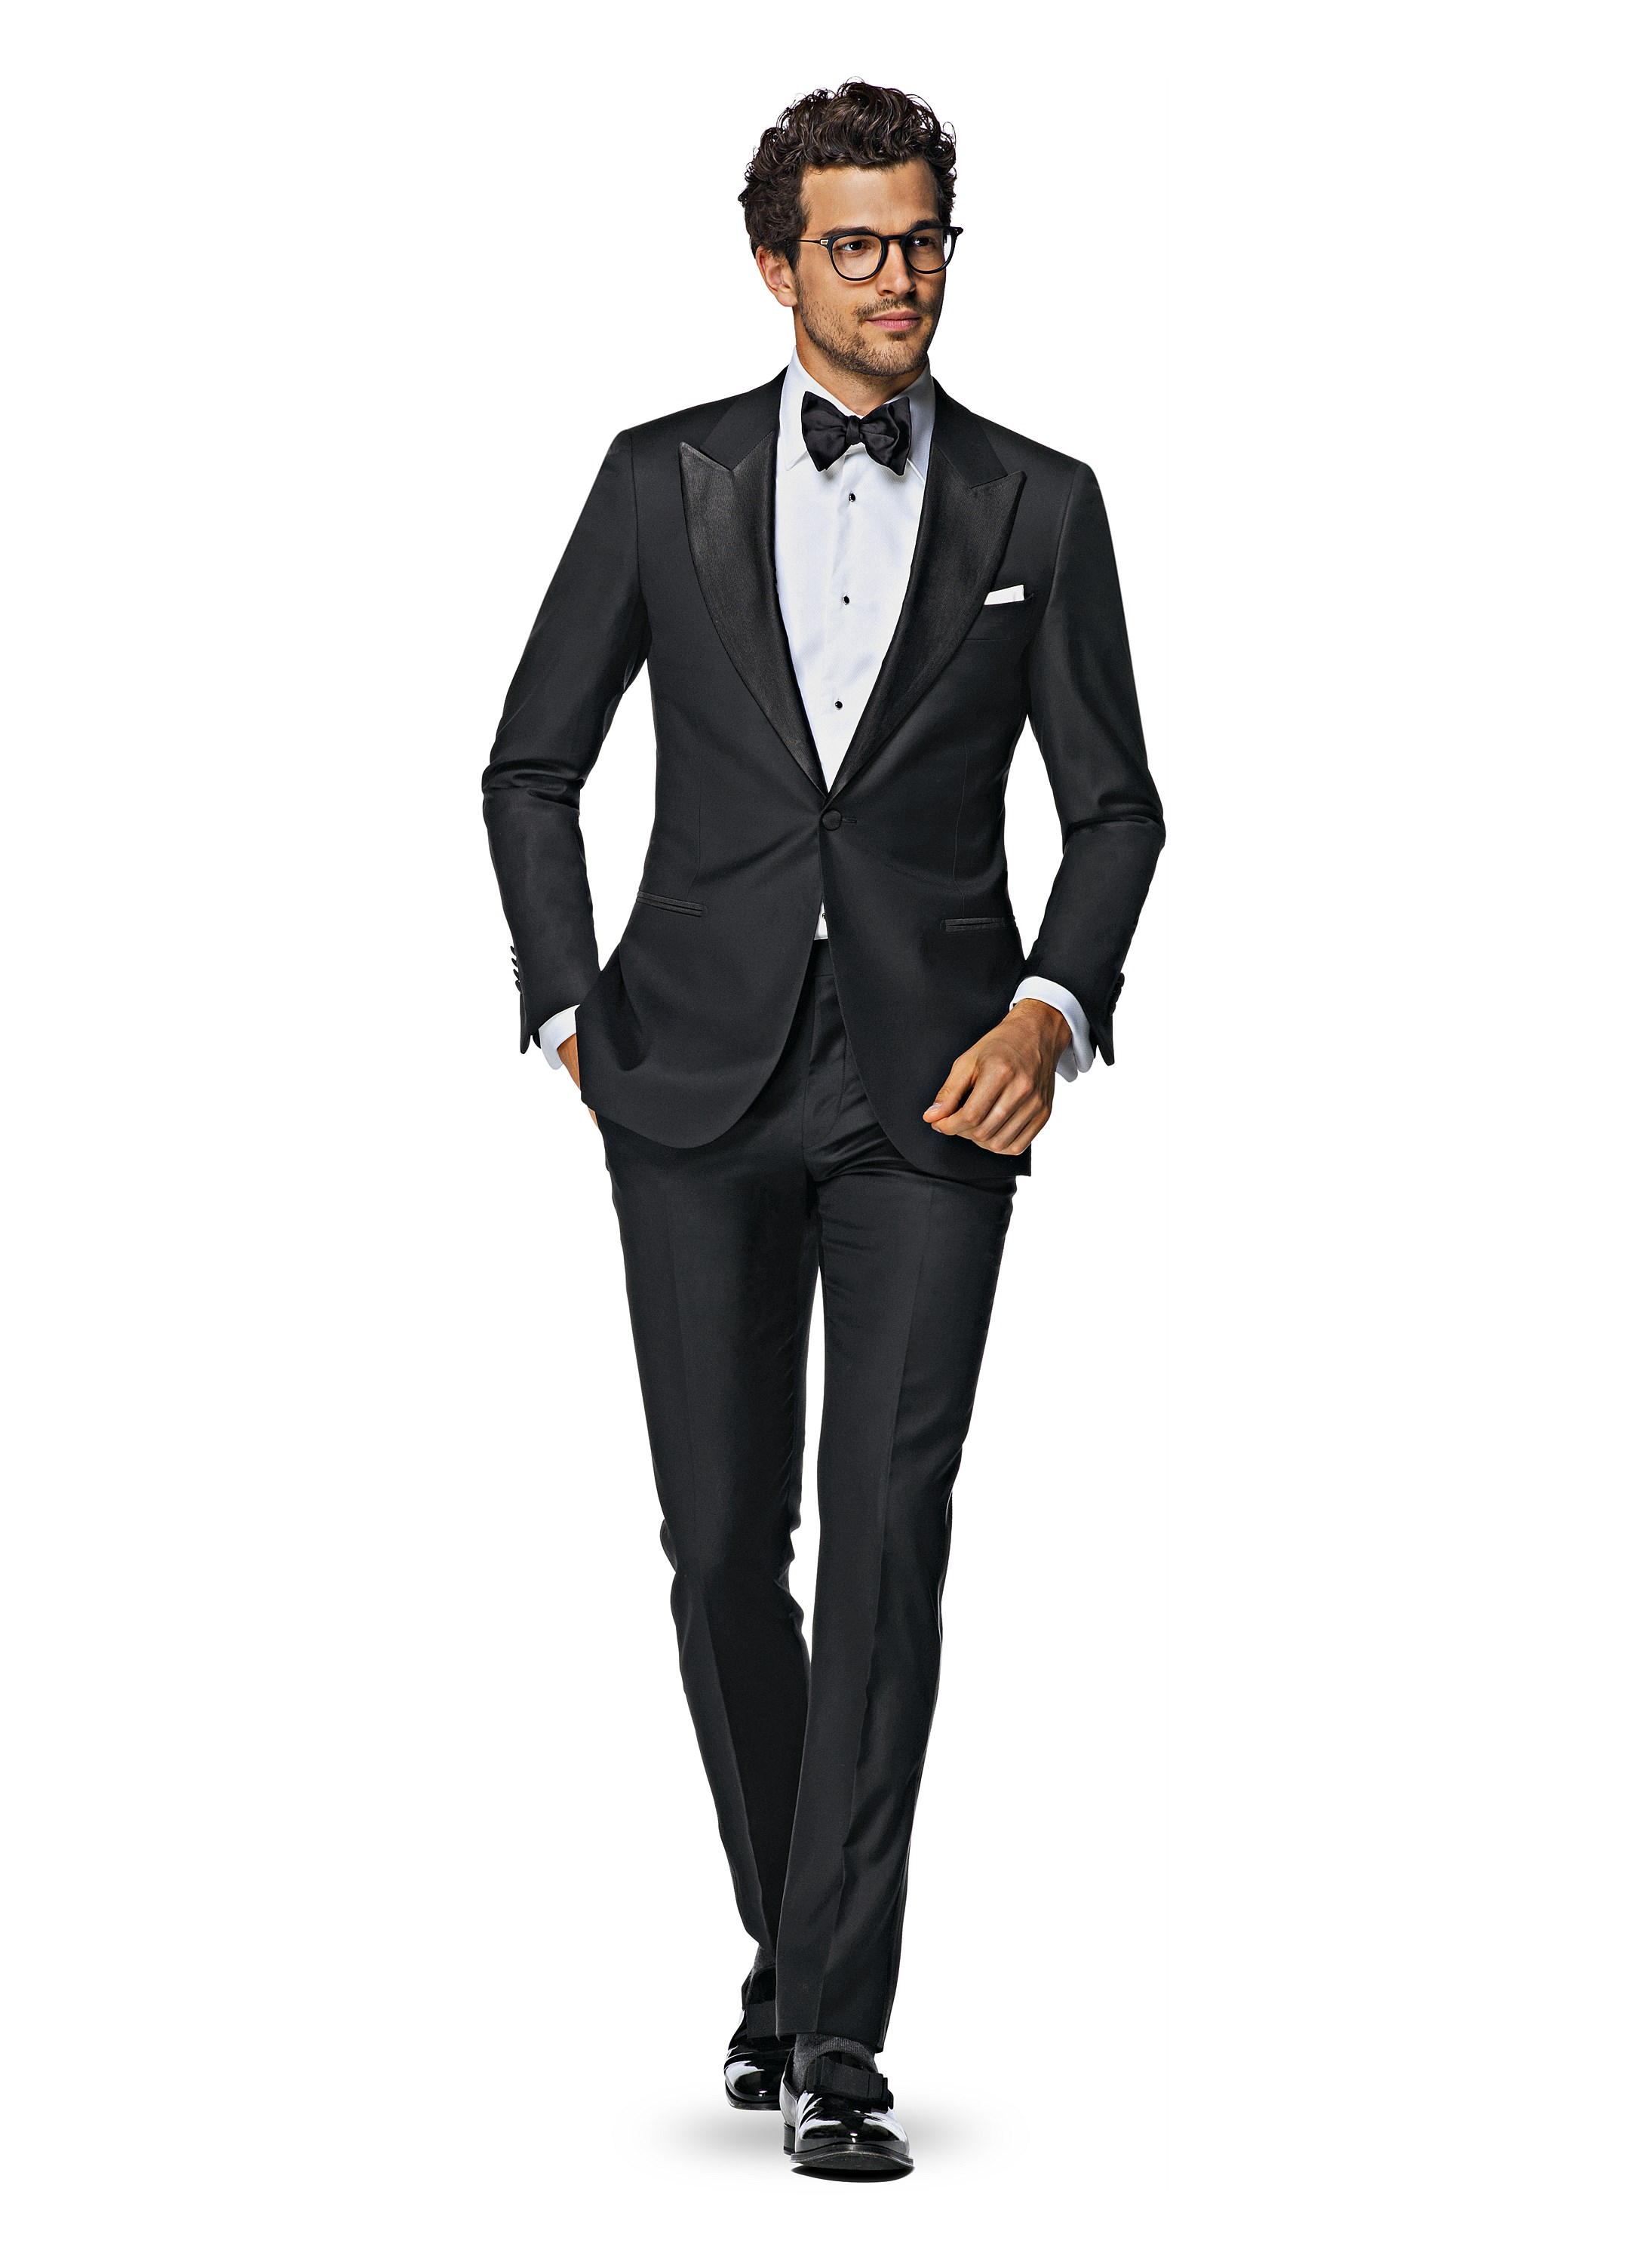 Brown Or Black Shoes With Suit